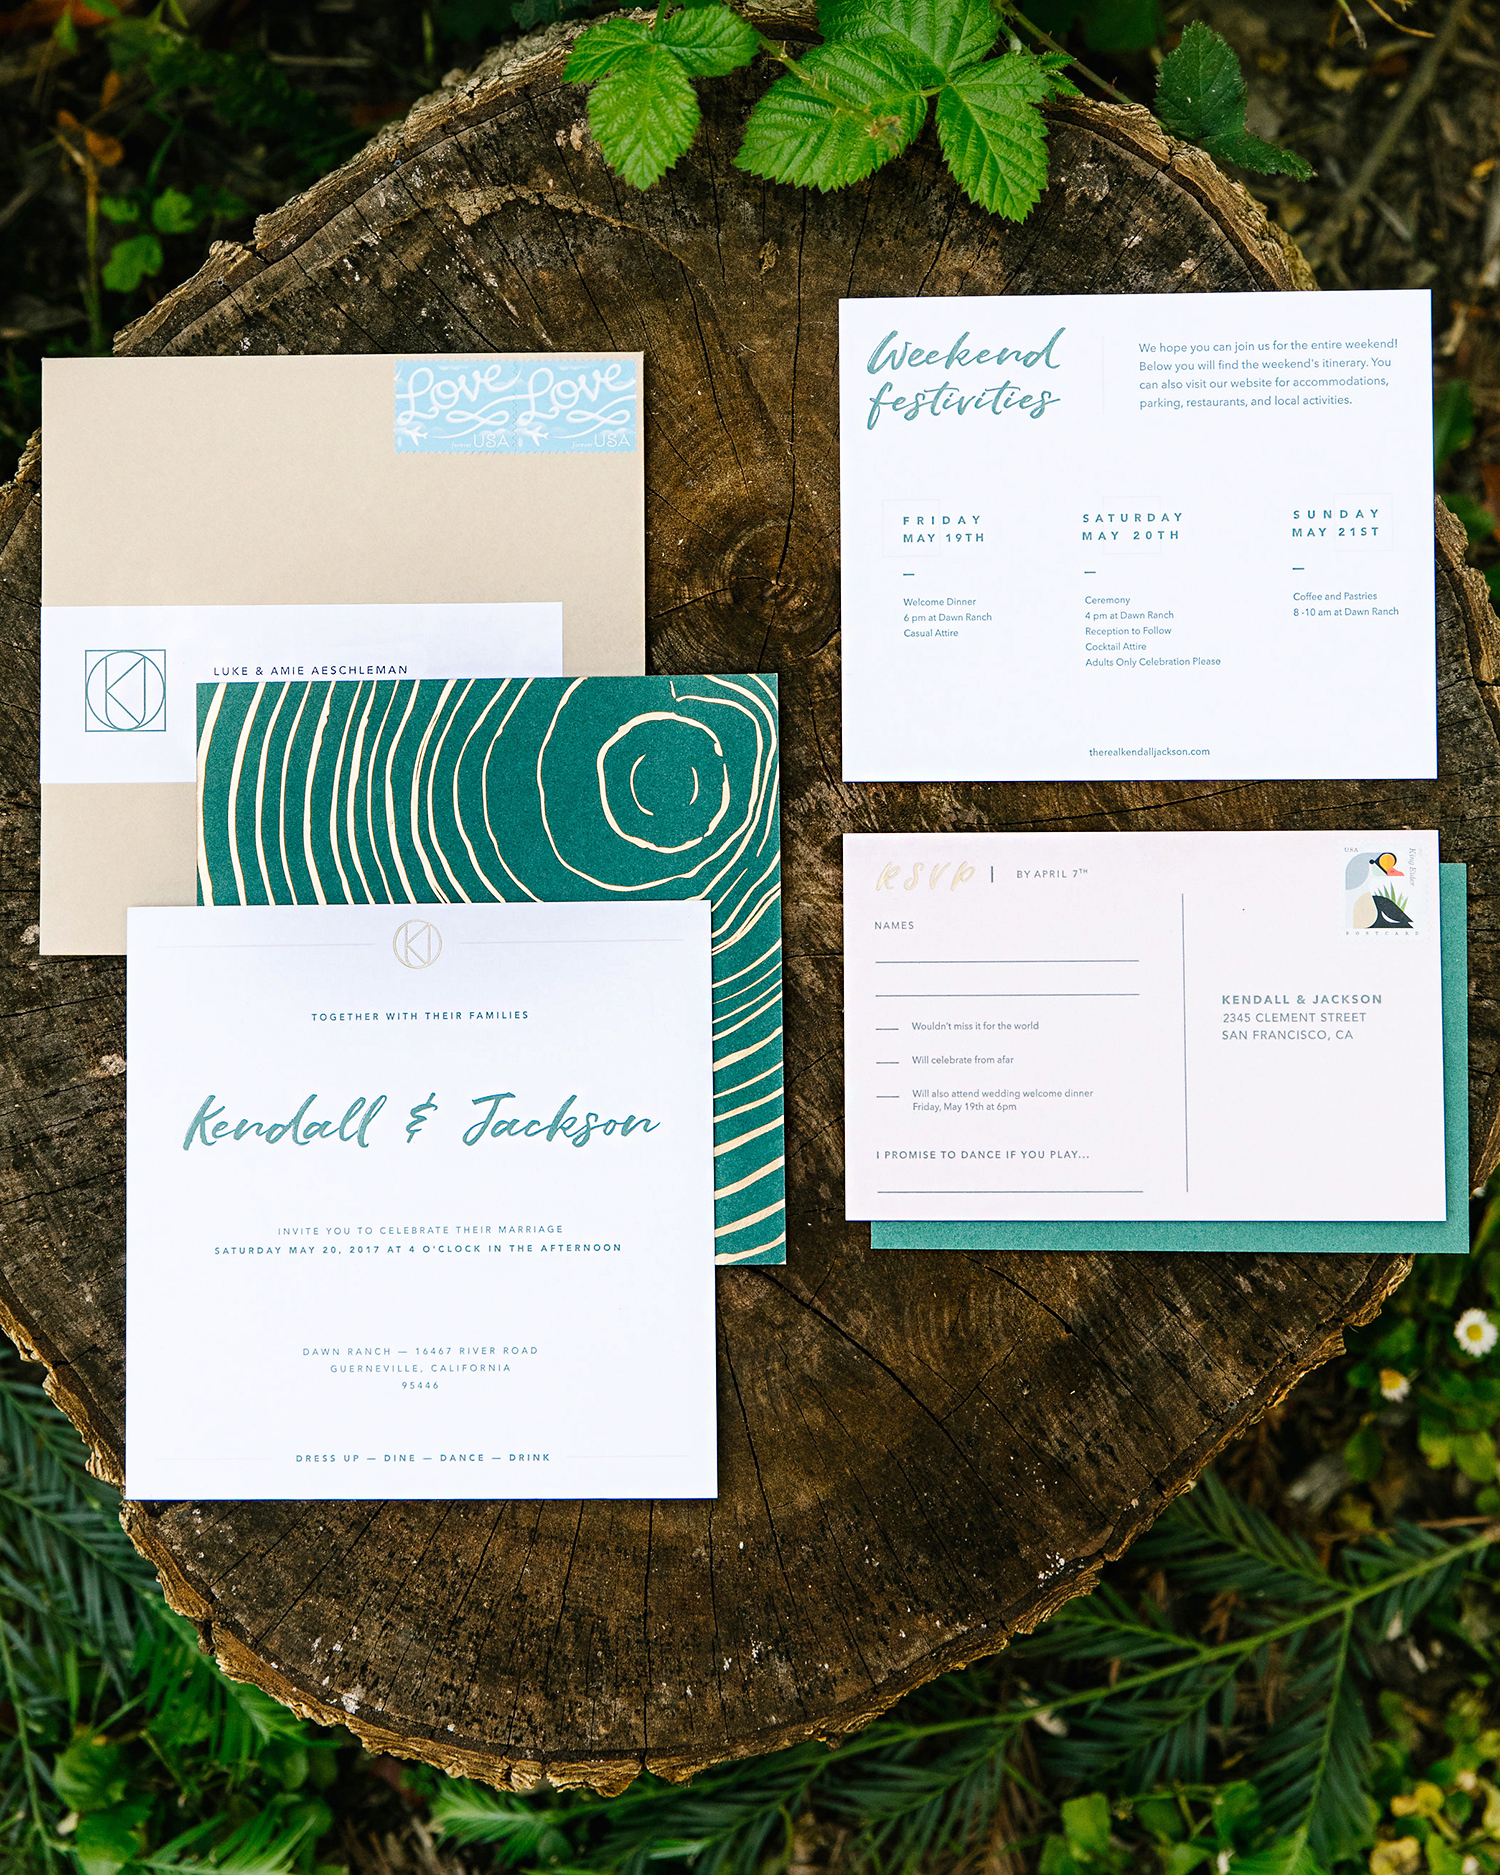 kendall jackson wedding invitation